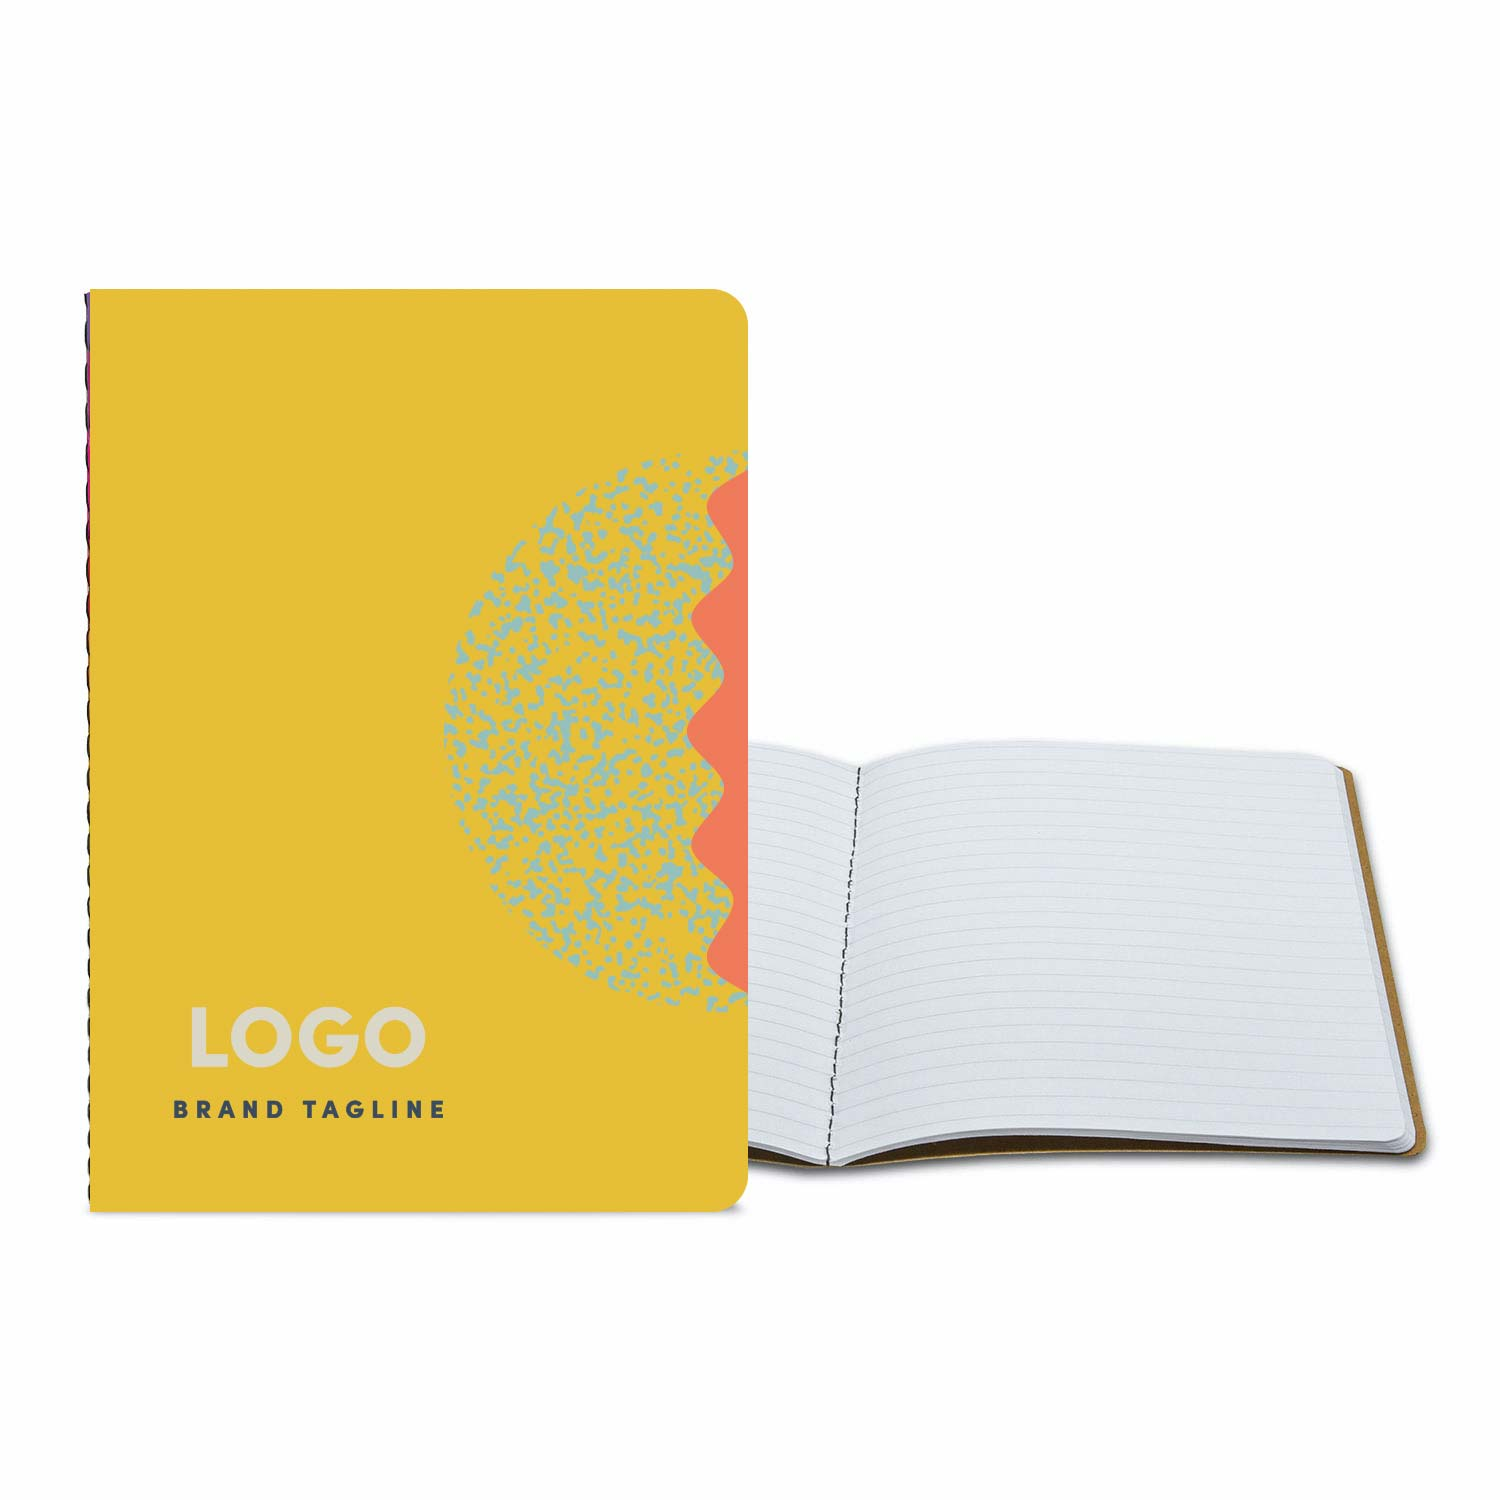 313656 full color commuter journal medium full color cover standard filler pages